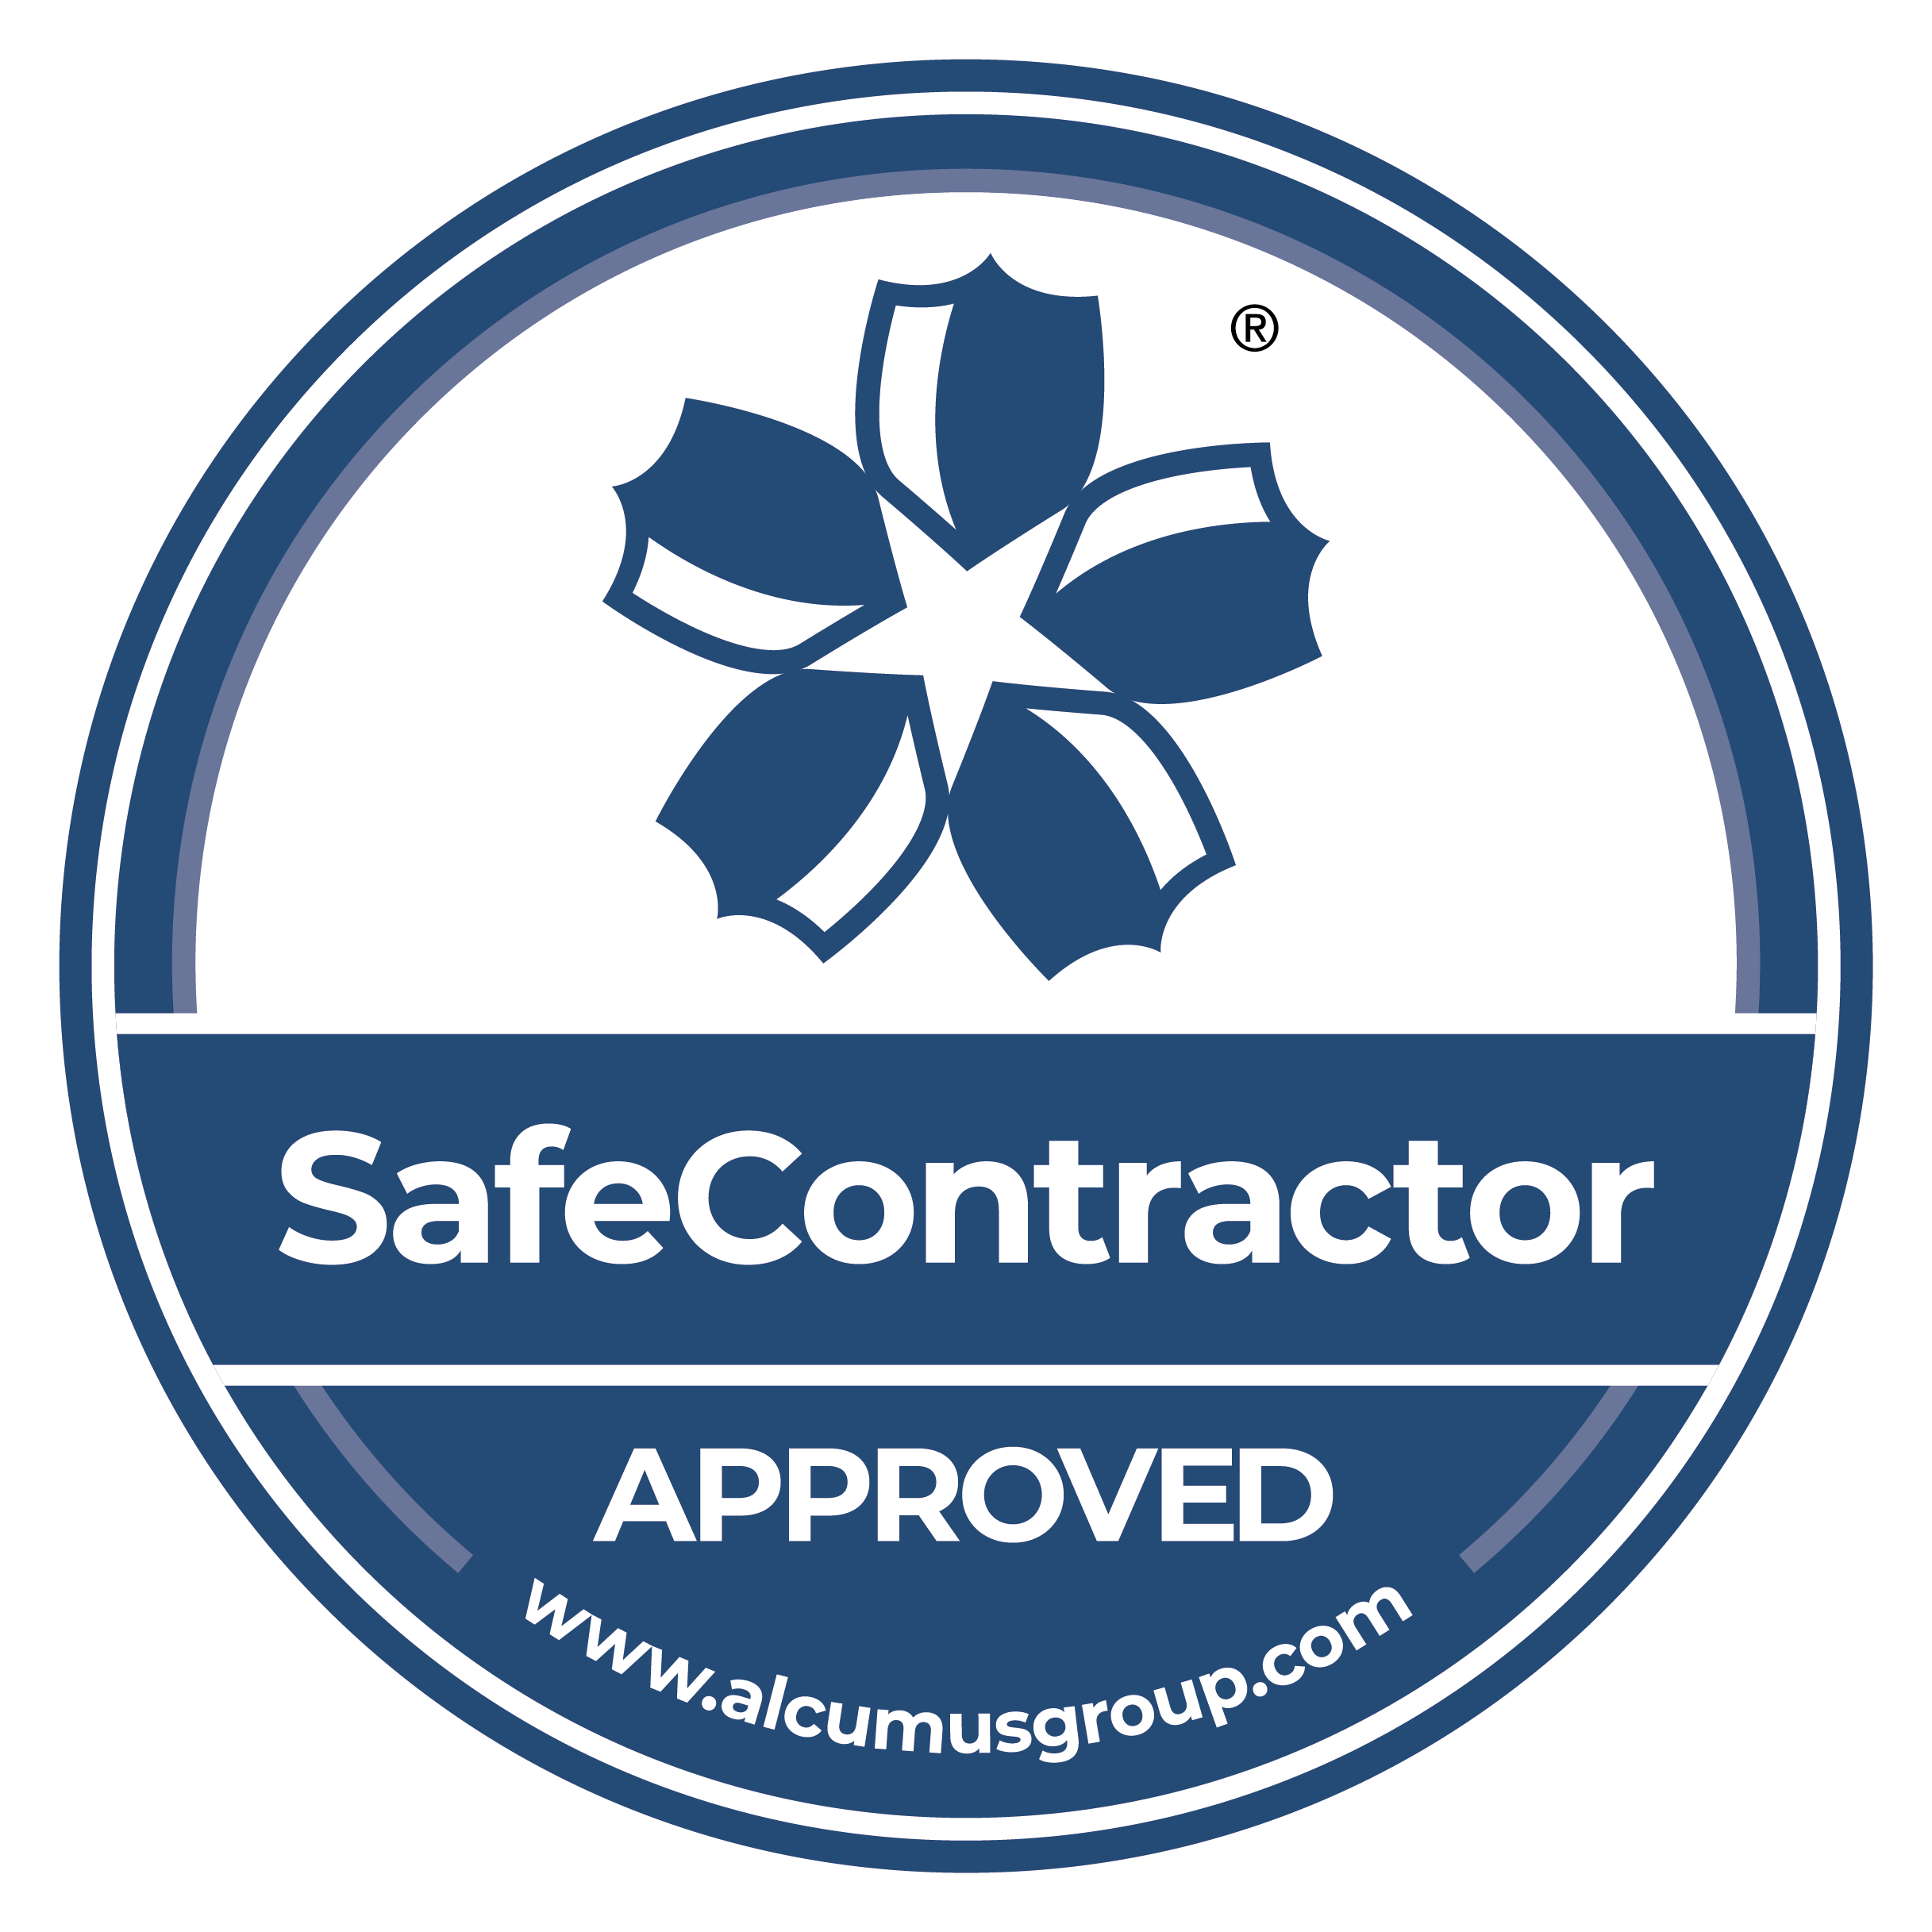 SafeContractor approved accreditation logo